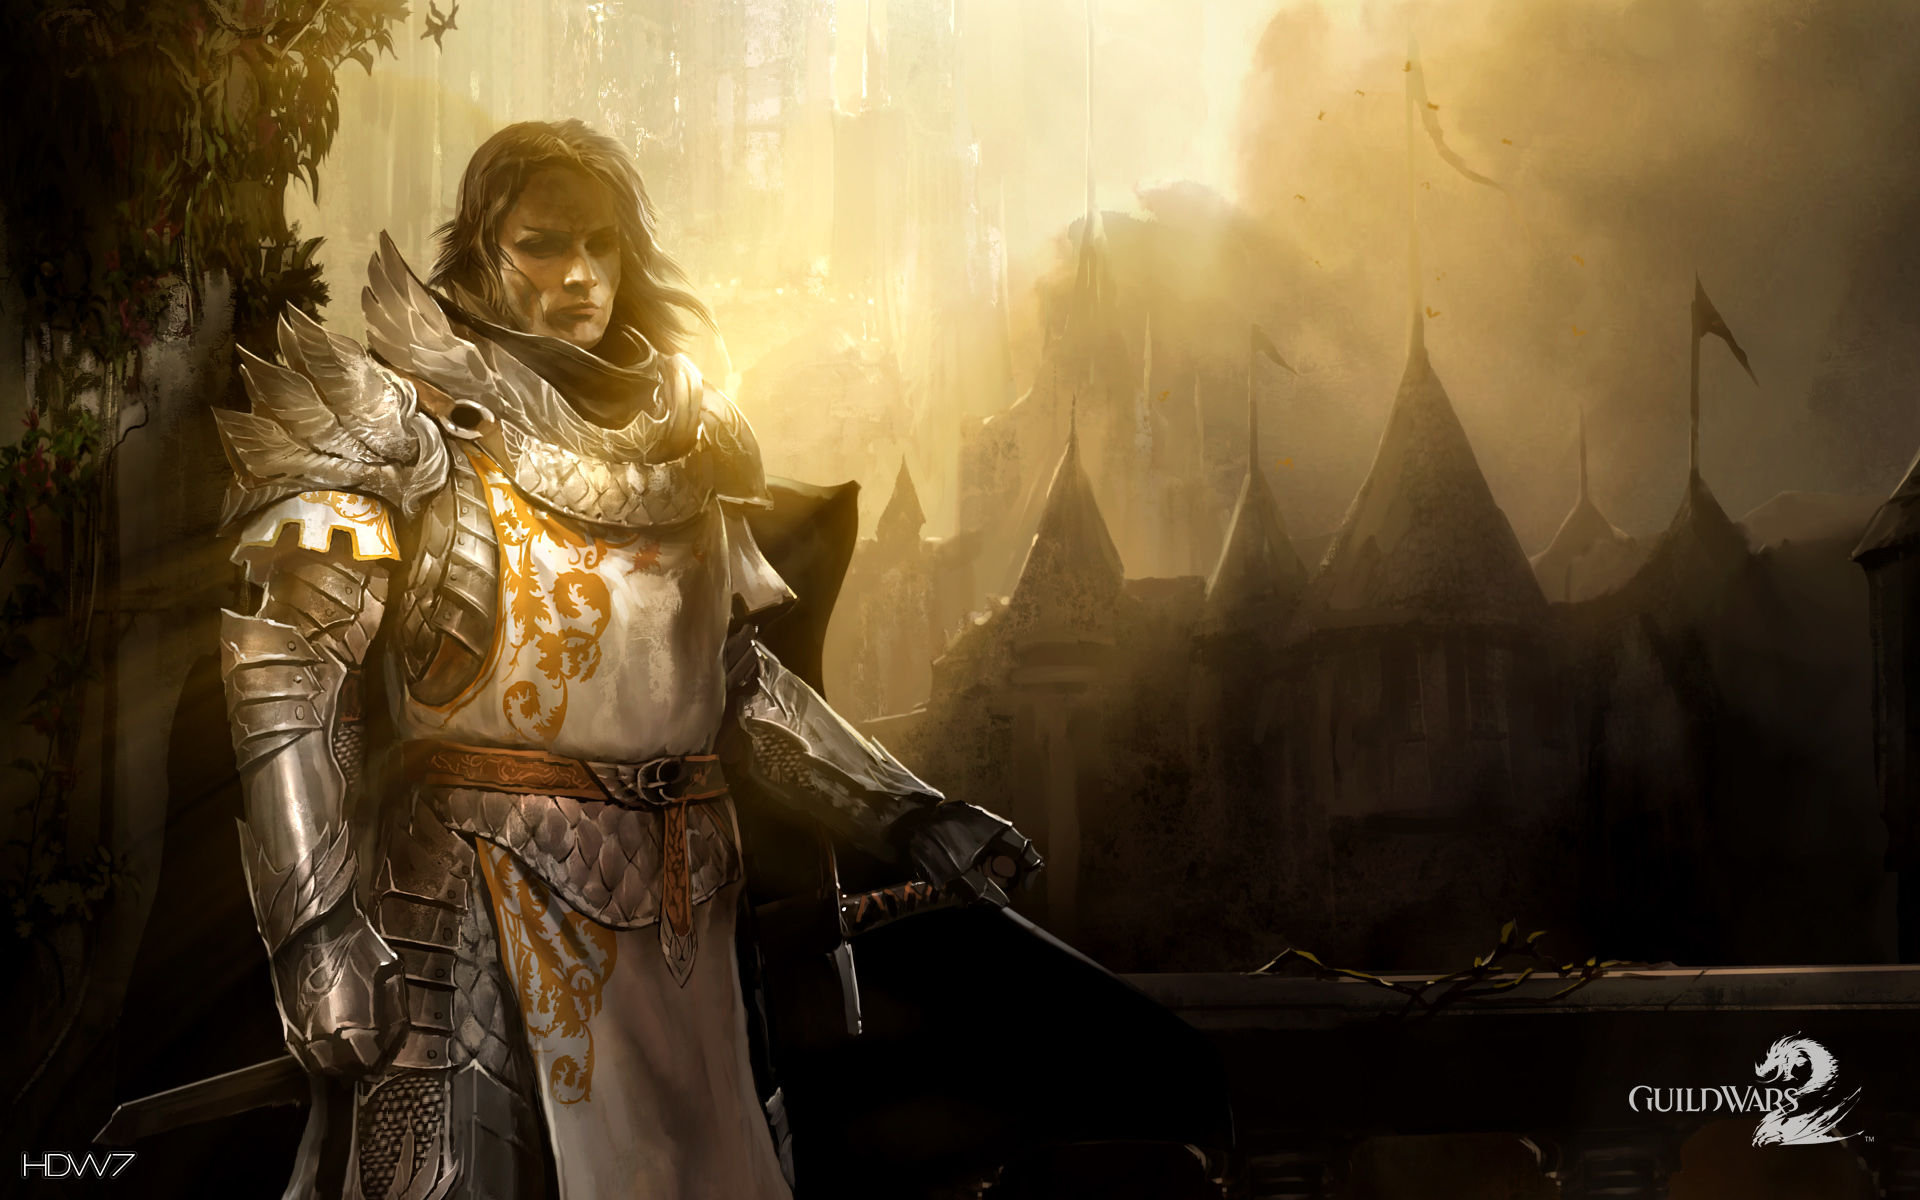 guild wars 2 gw2 human widescreen wallpaper